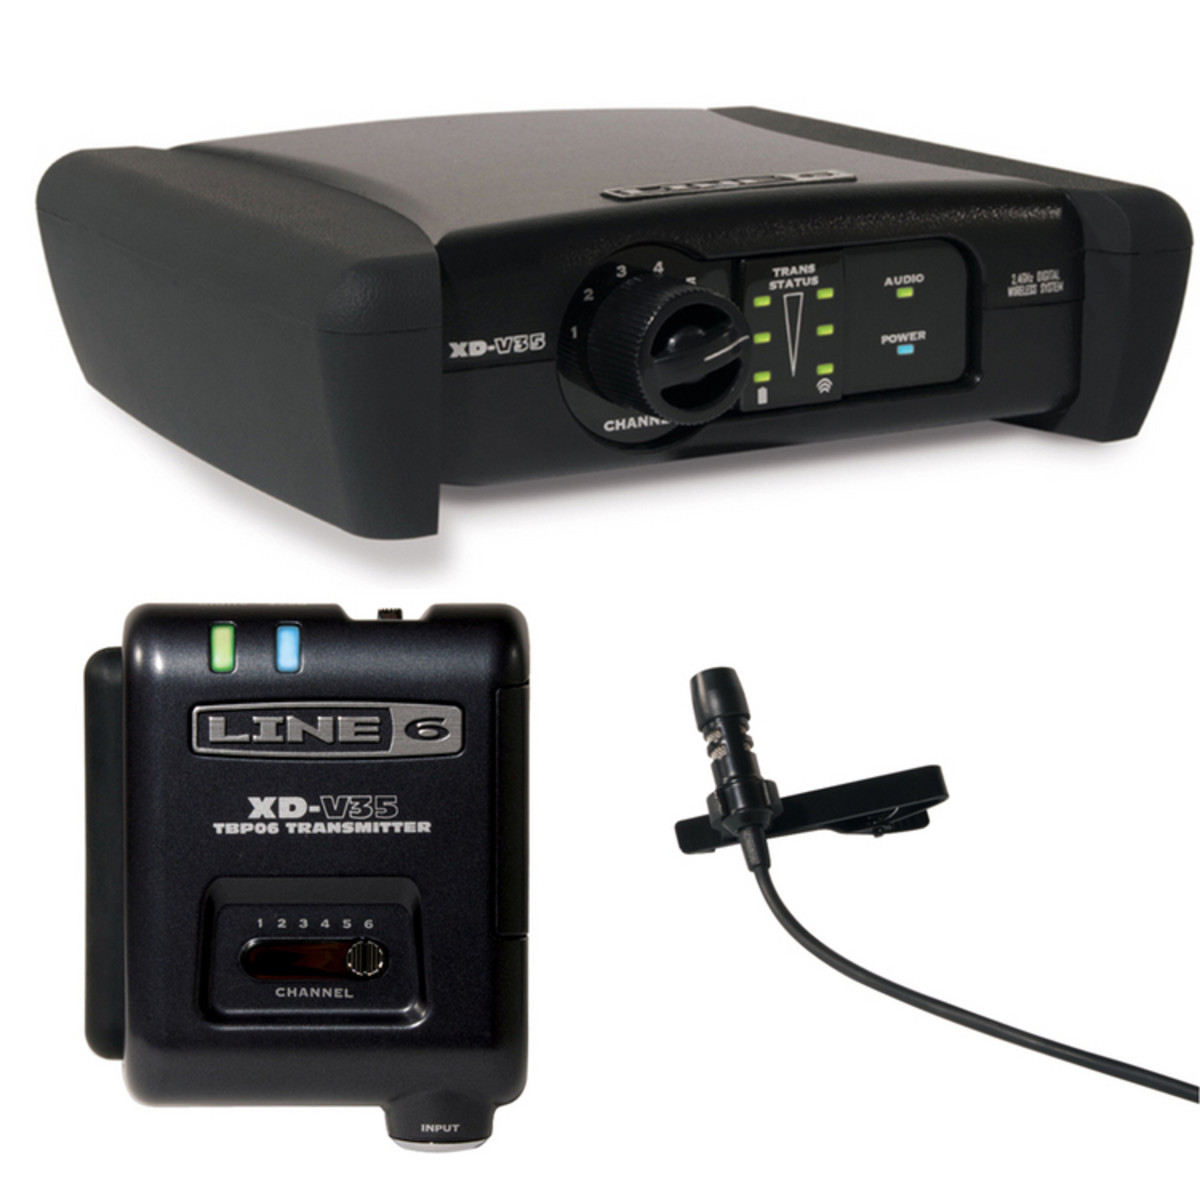 Line 6 XD V75L Digital Wireless Lavalier Mic System | Gear4music